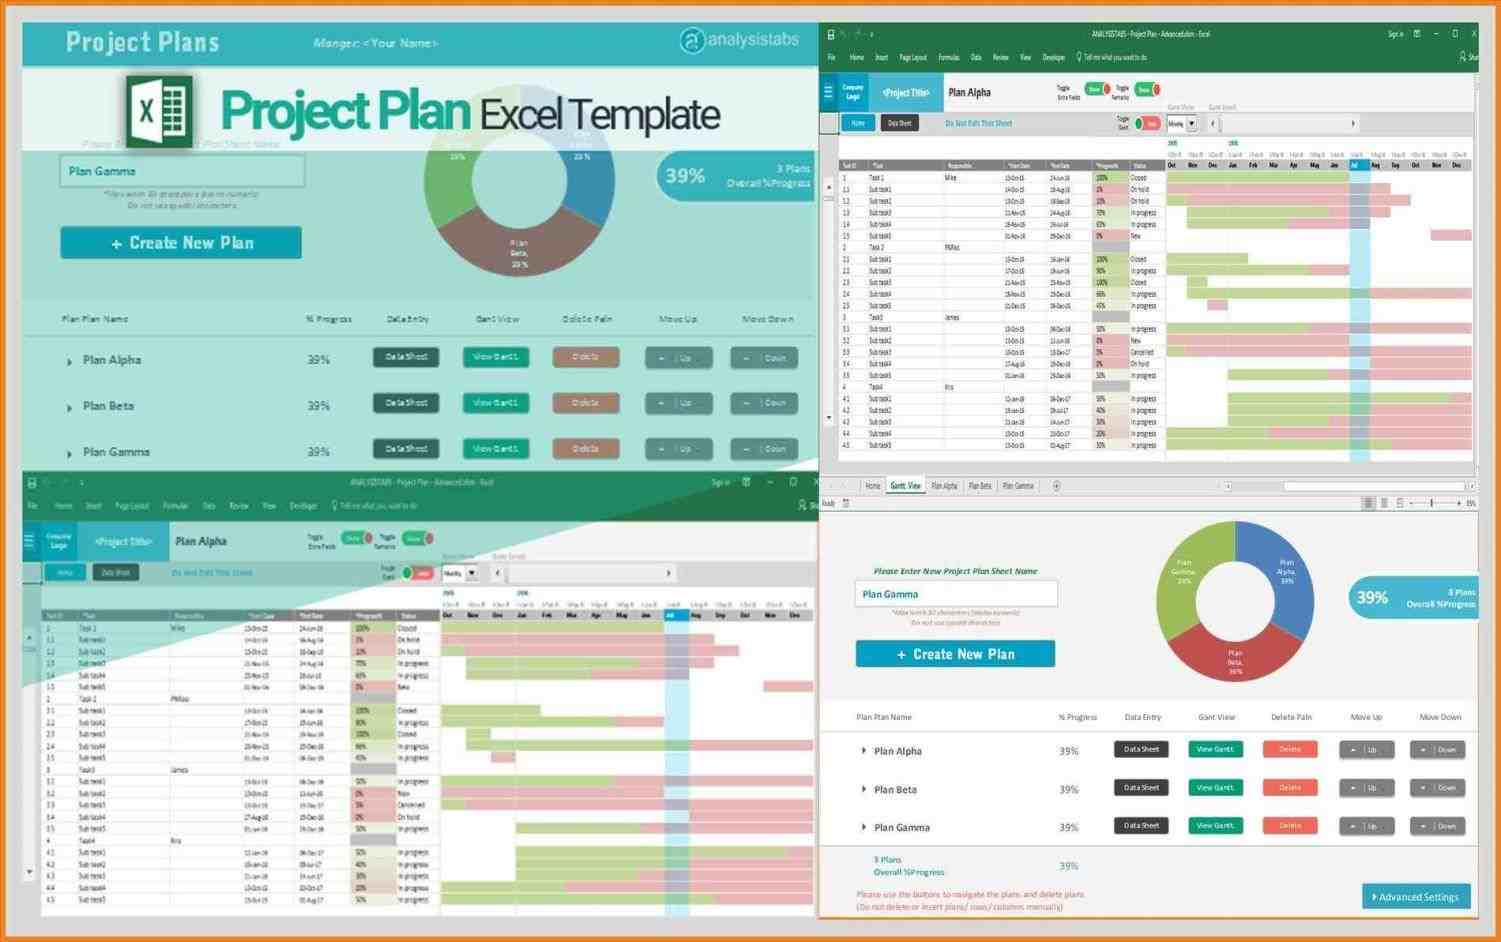 download Project Plan Template Excel Gantt project management gantt chart templates for excel rhprojectmanagersinncom plan and webbased deskerarhbetterbusinessdeskeracom project Project